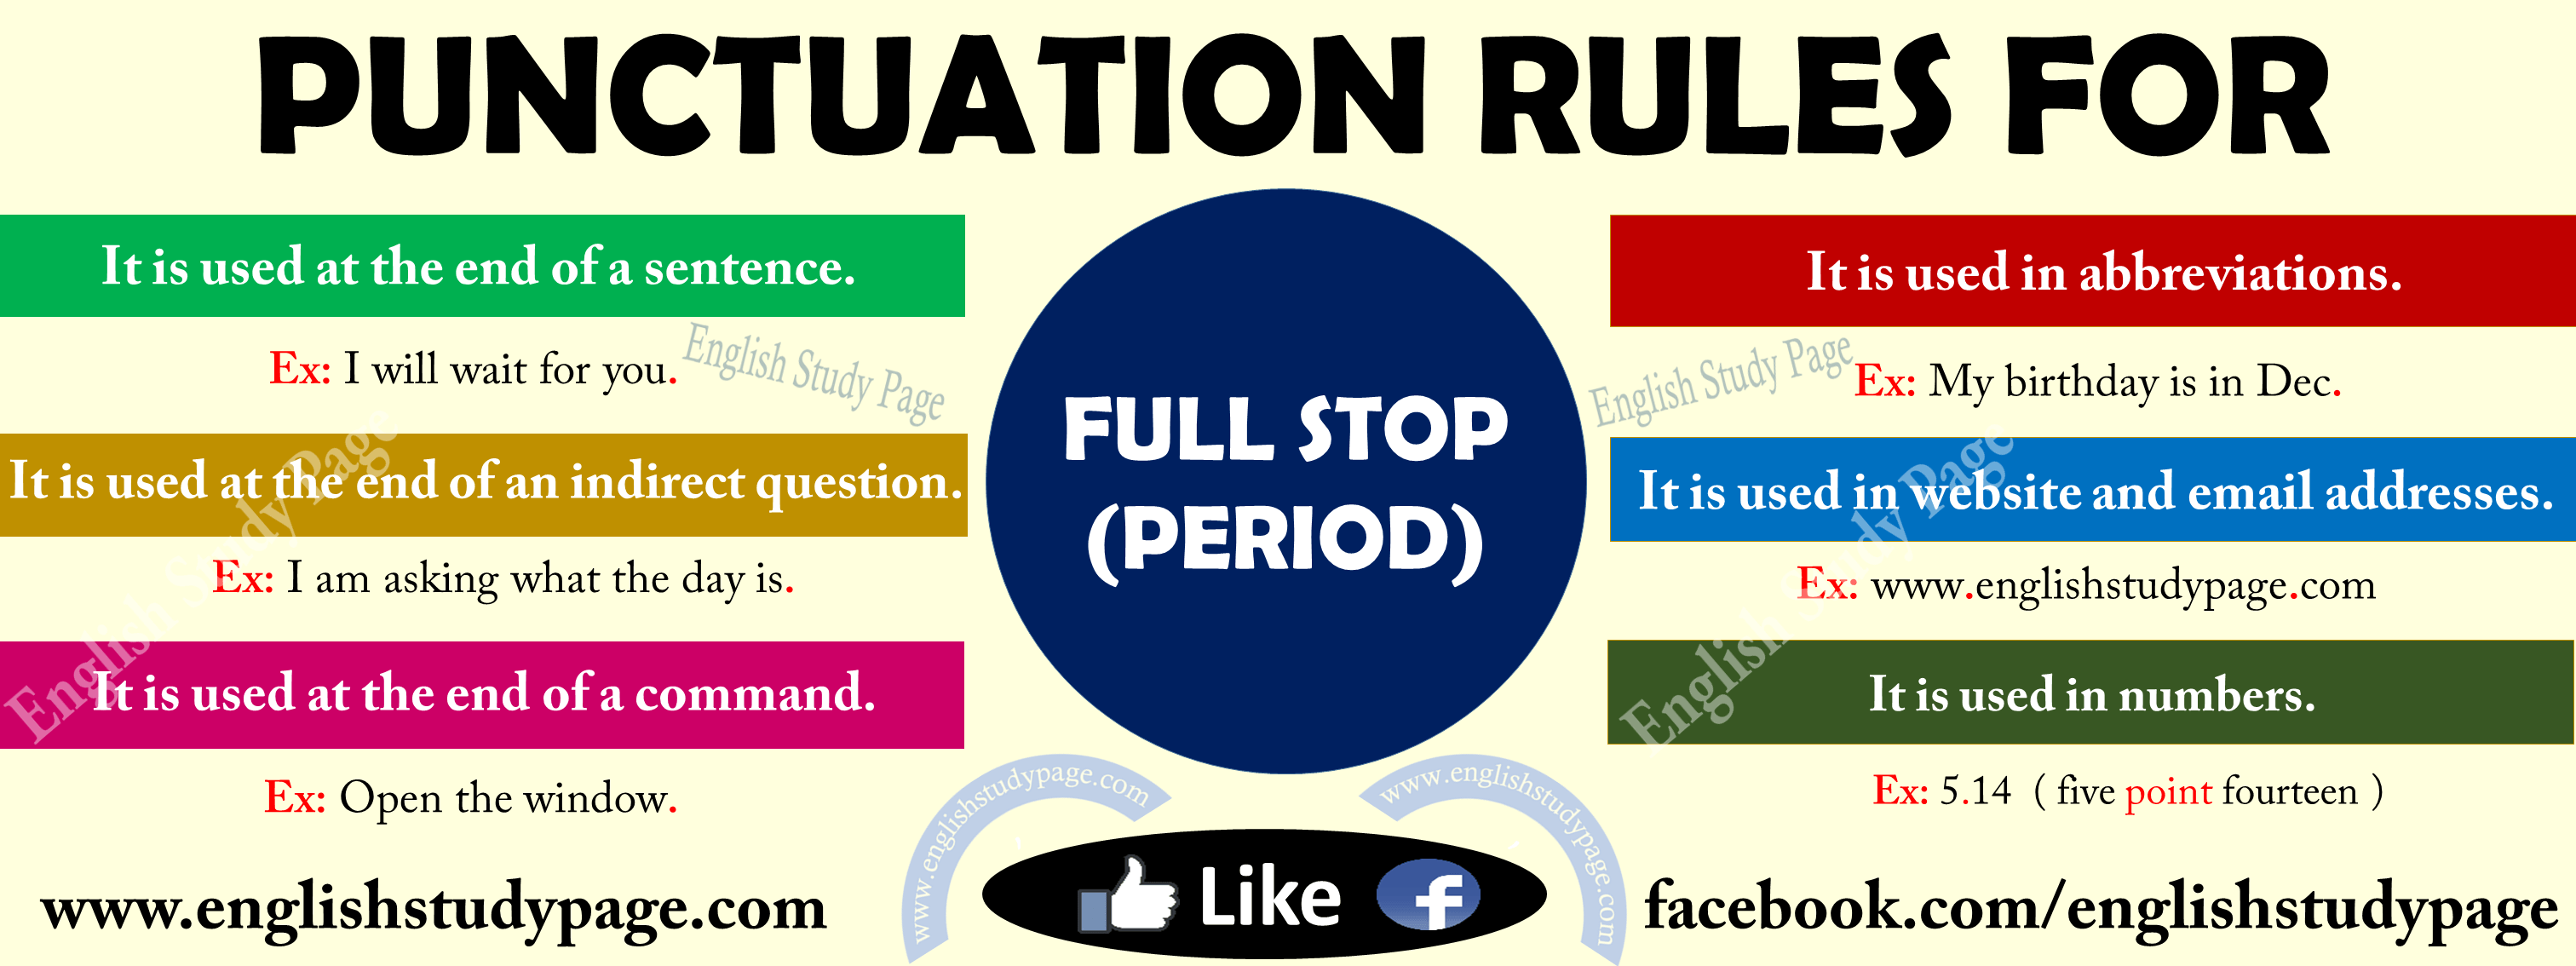 Punctuation Rules For Full Stop Or Period Or Point